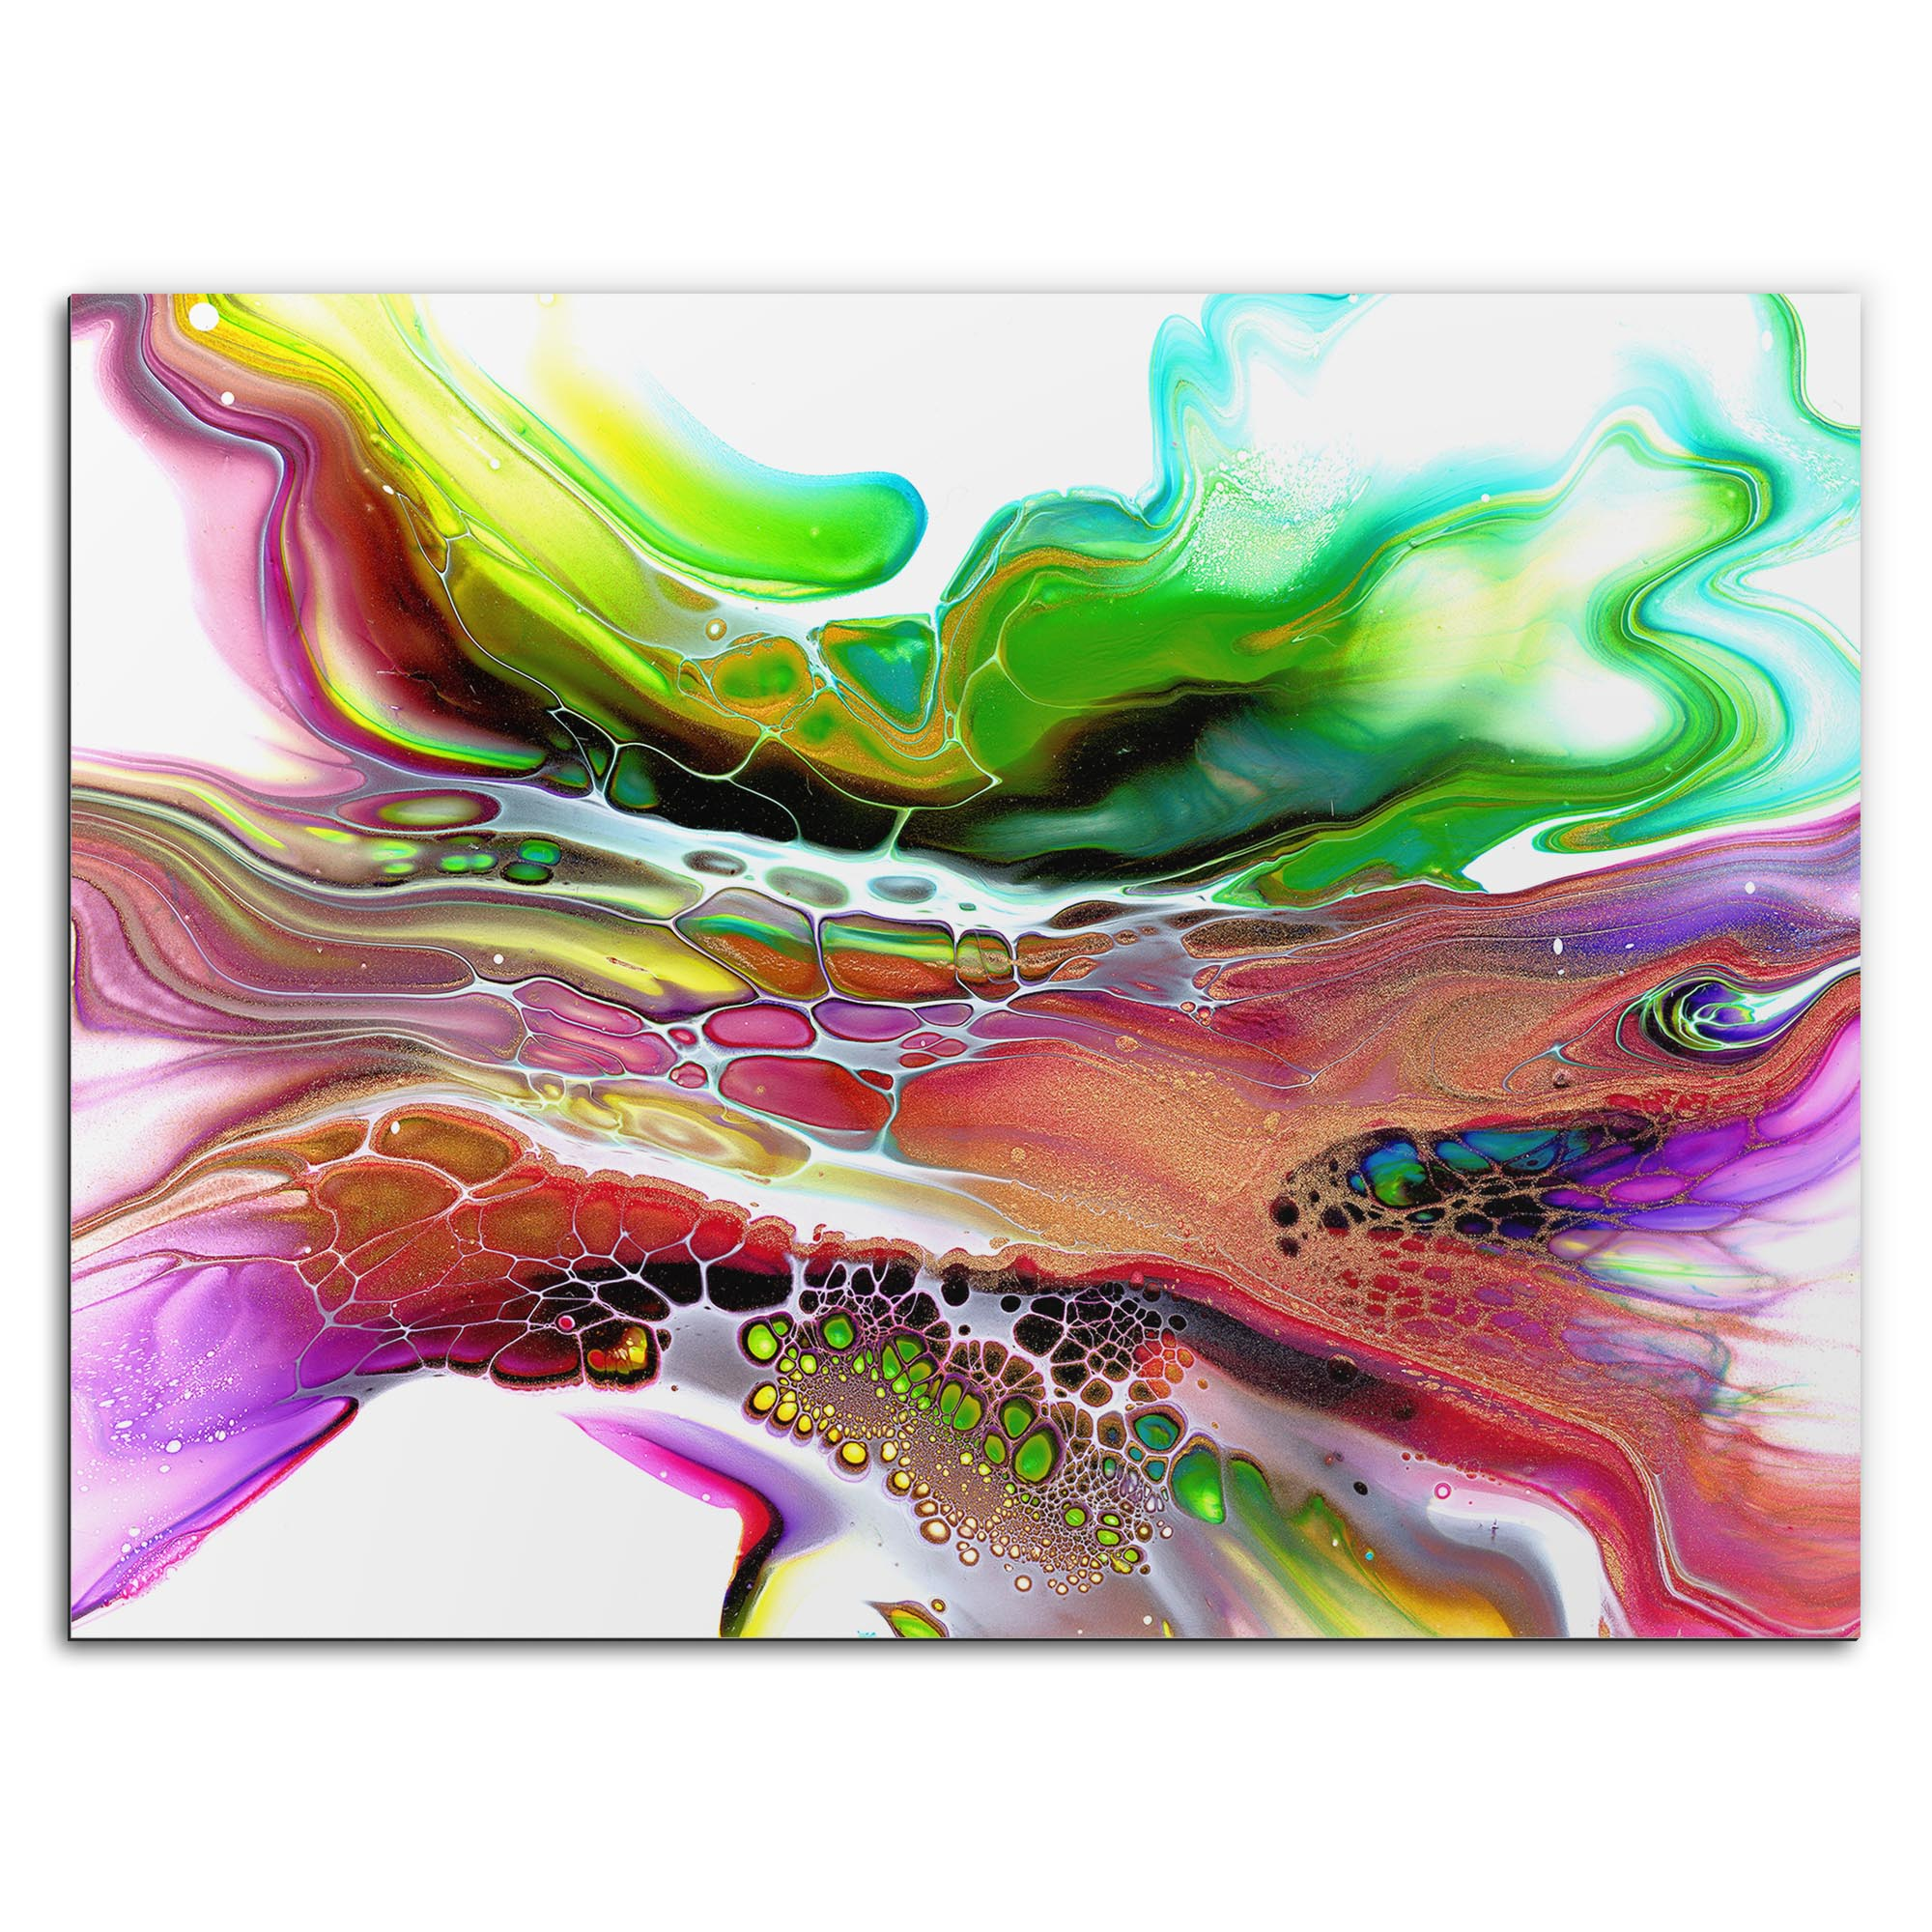 Elana Reiter 'Compression' 32in x 24in Contemporary Style Abstract Wall Art